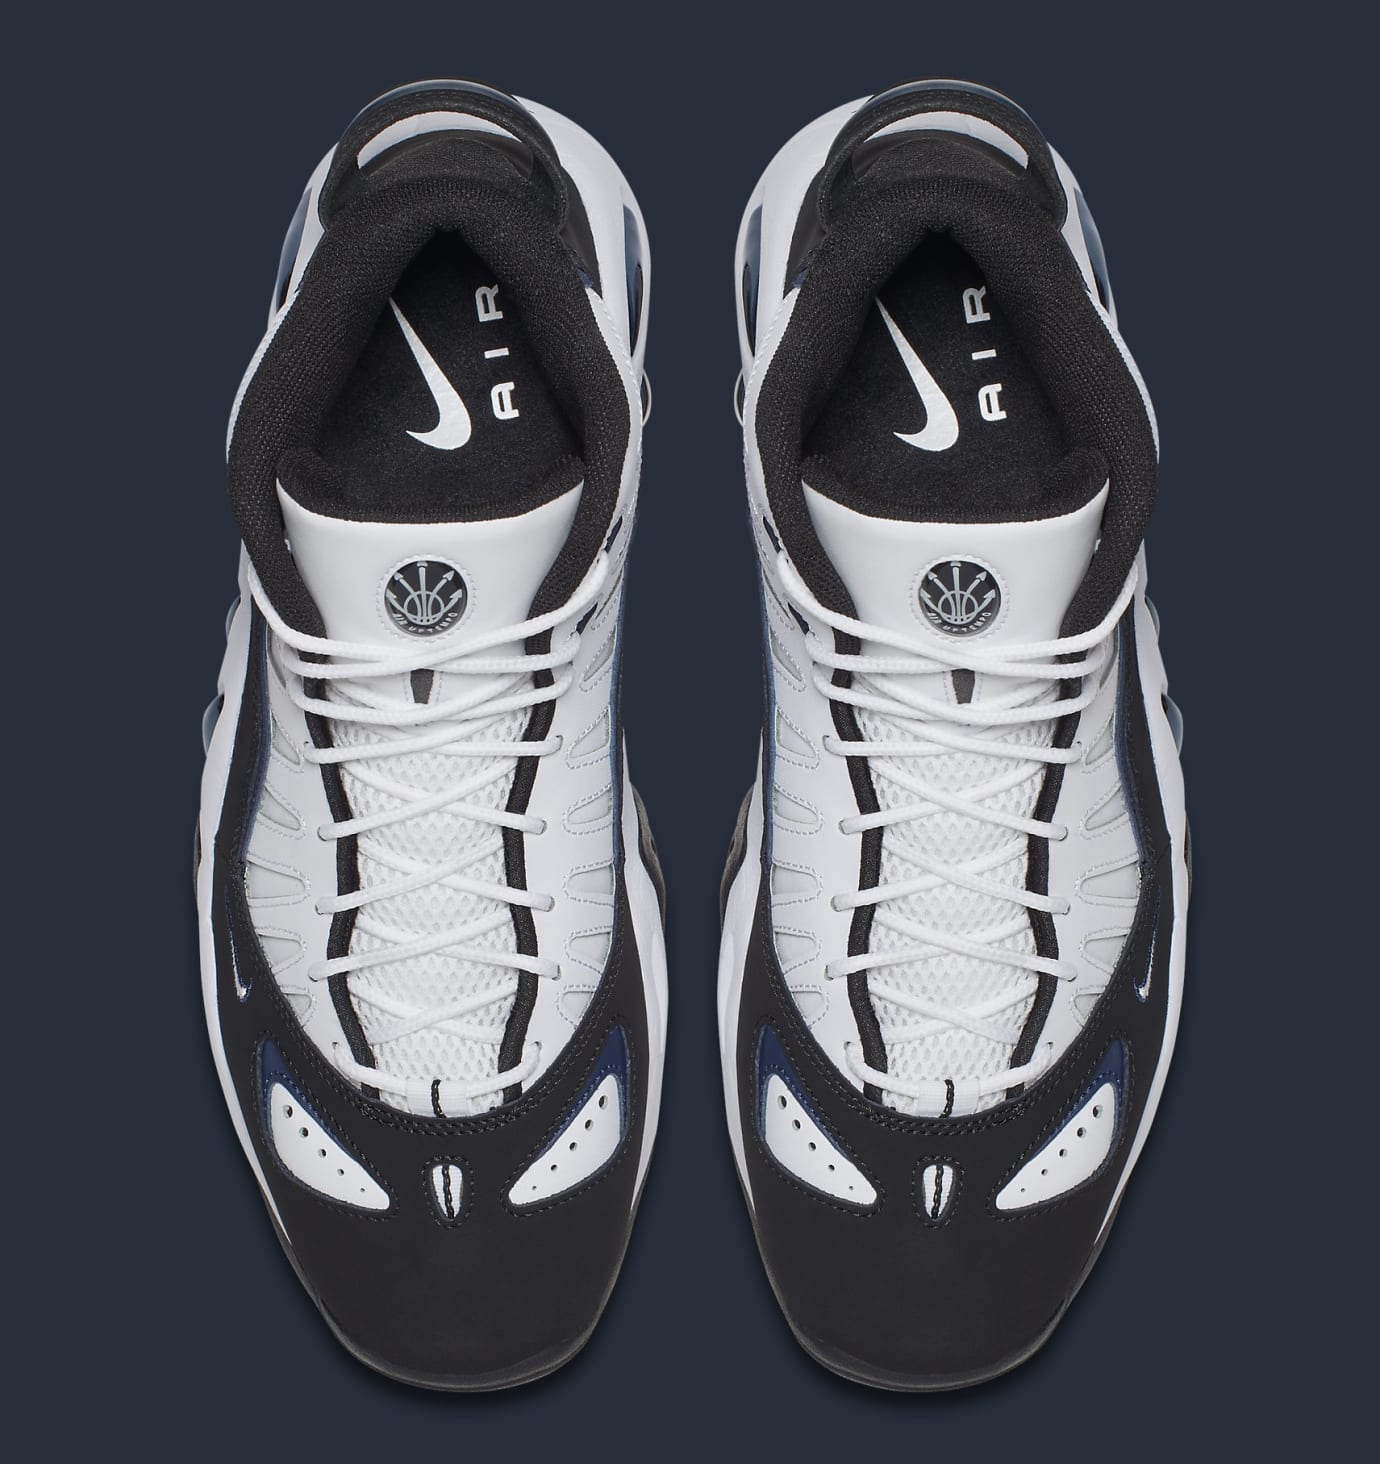 Nike Air Max Uptempo 97 White Black College Navy Release